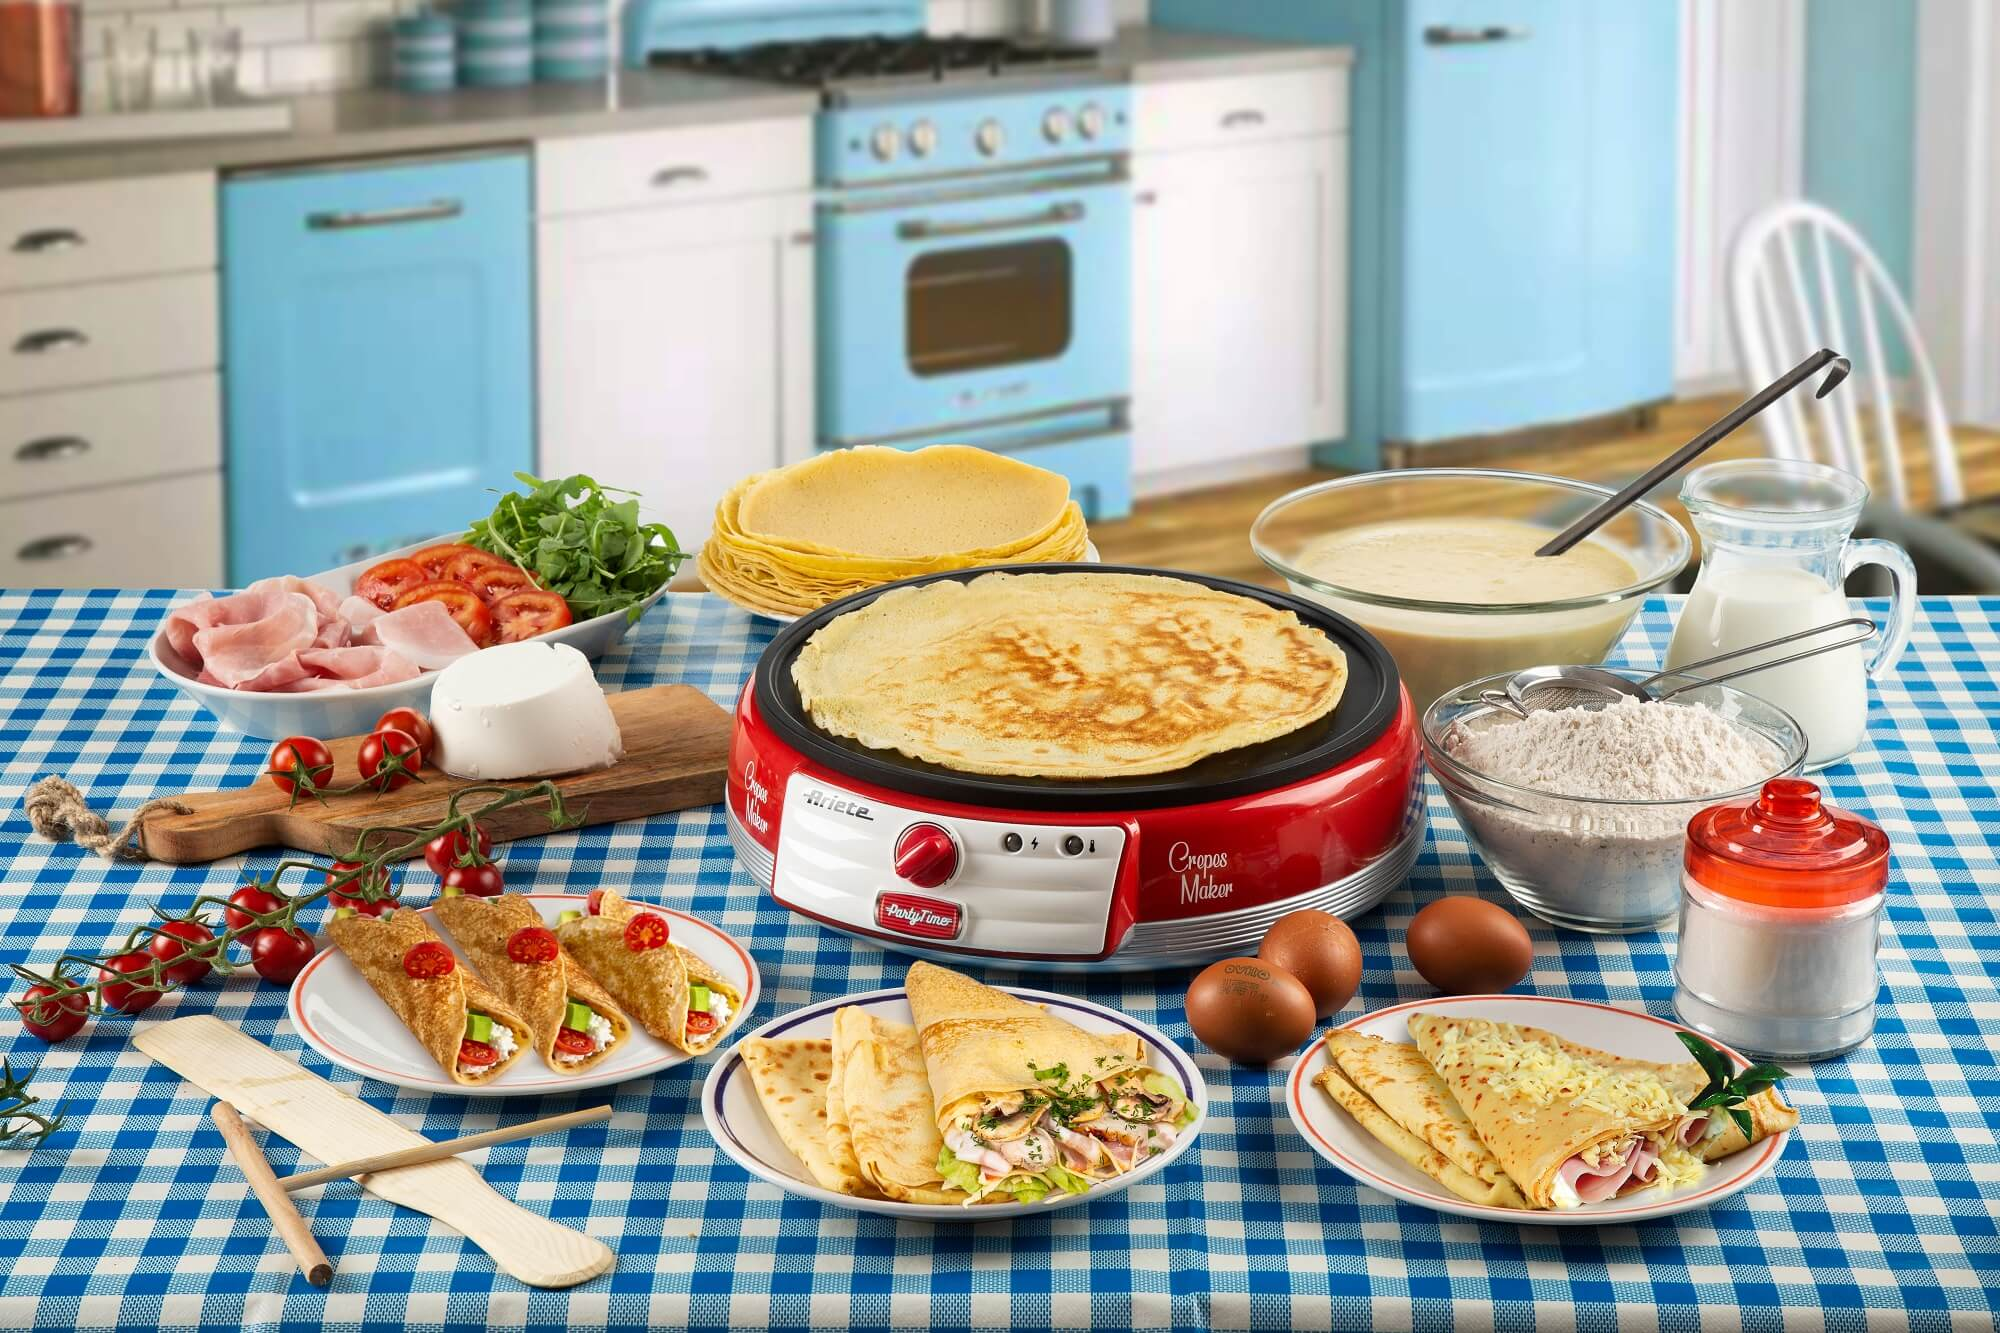 crepes maker party time ariete 202 rosso